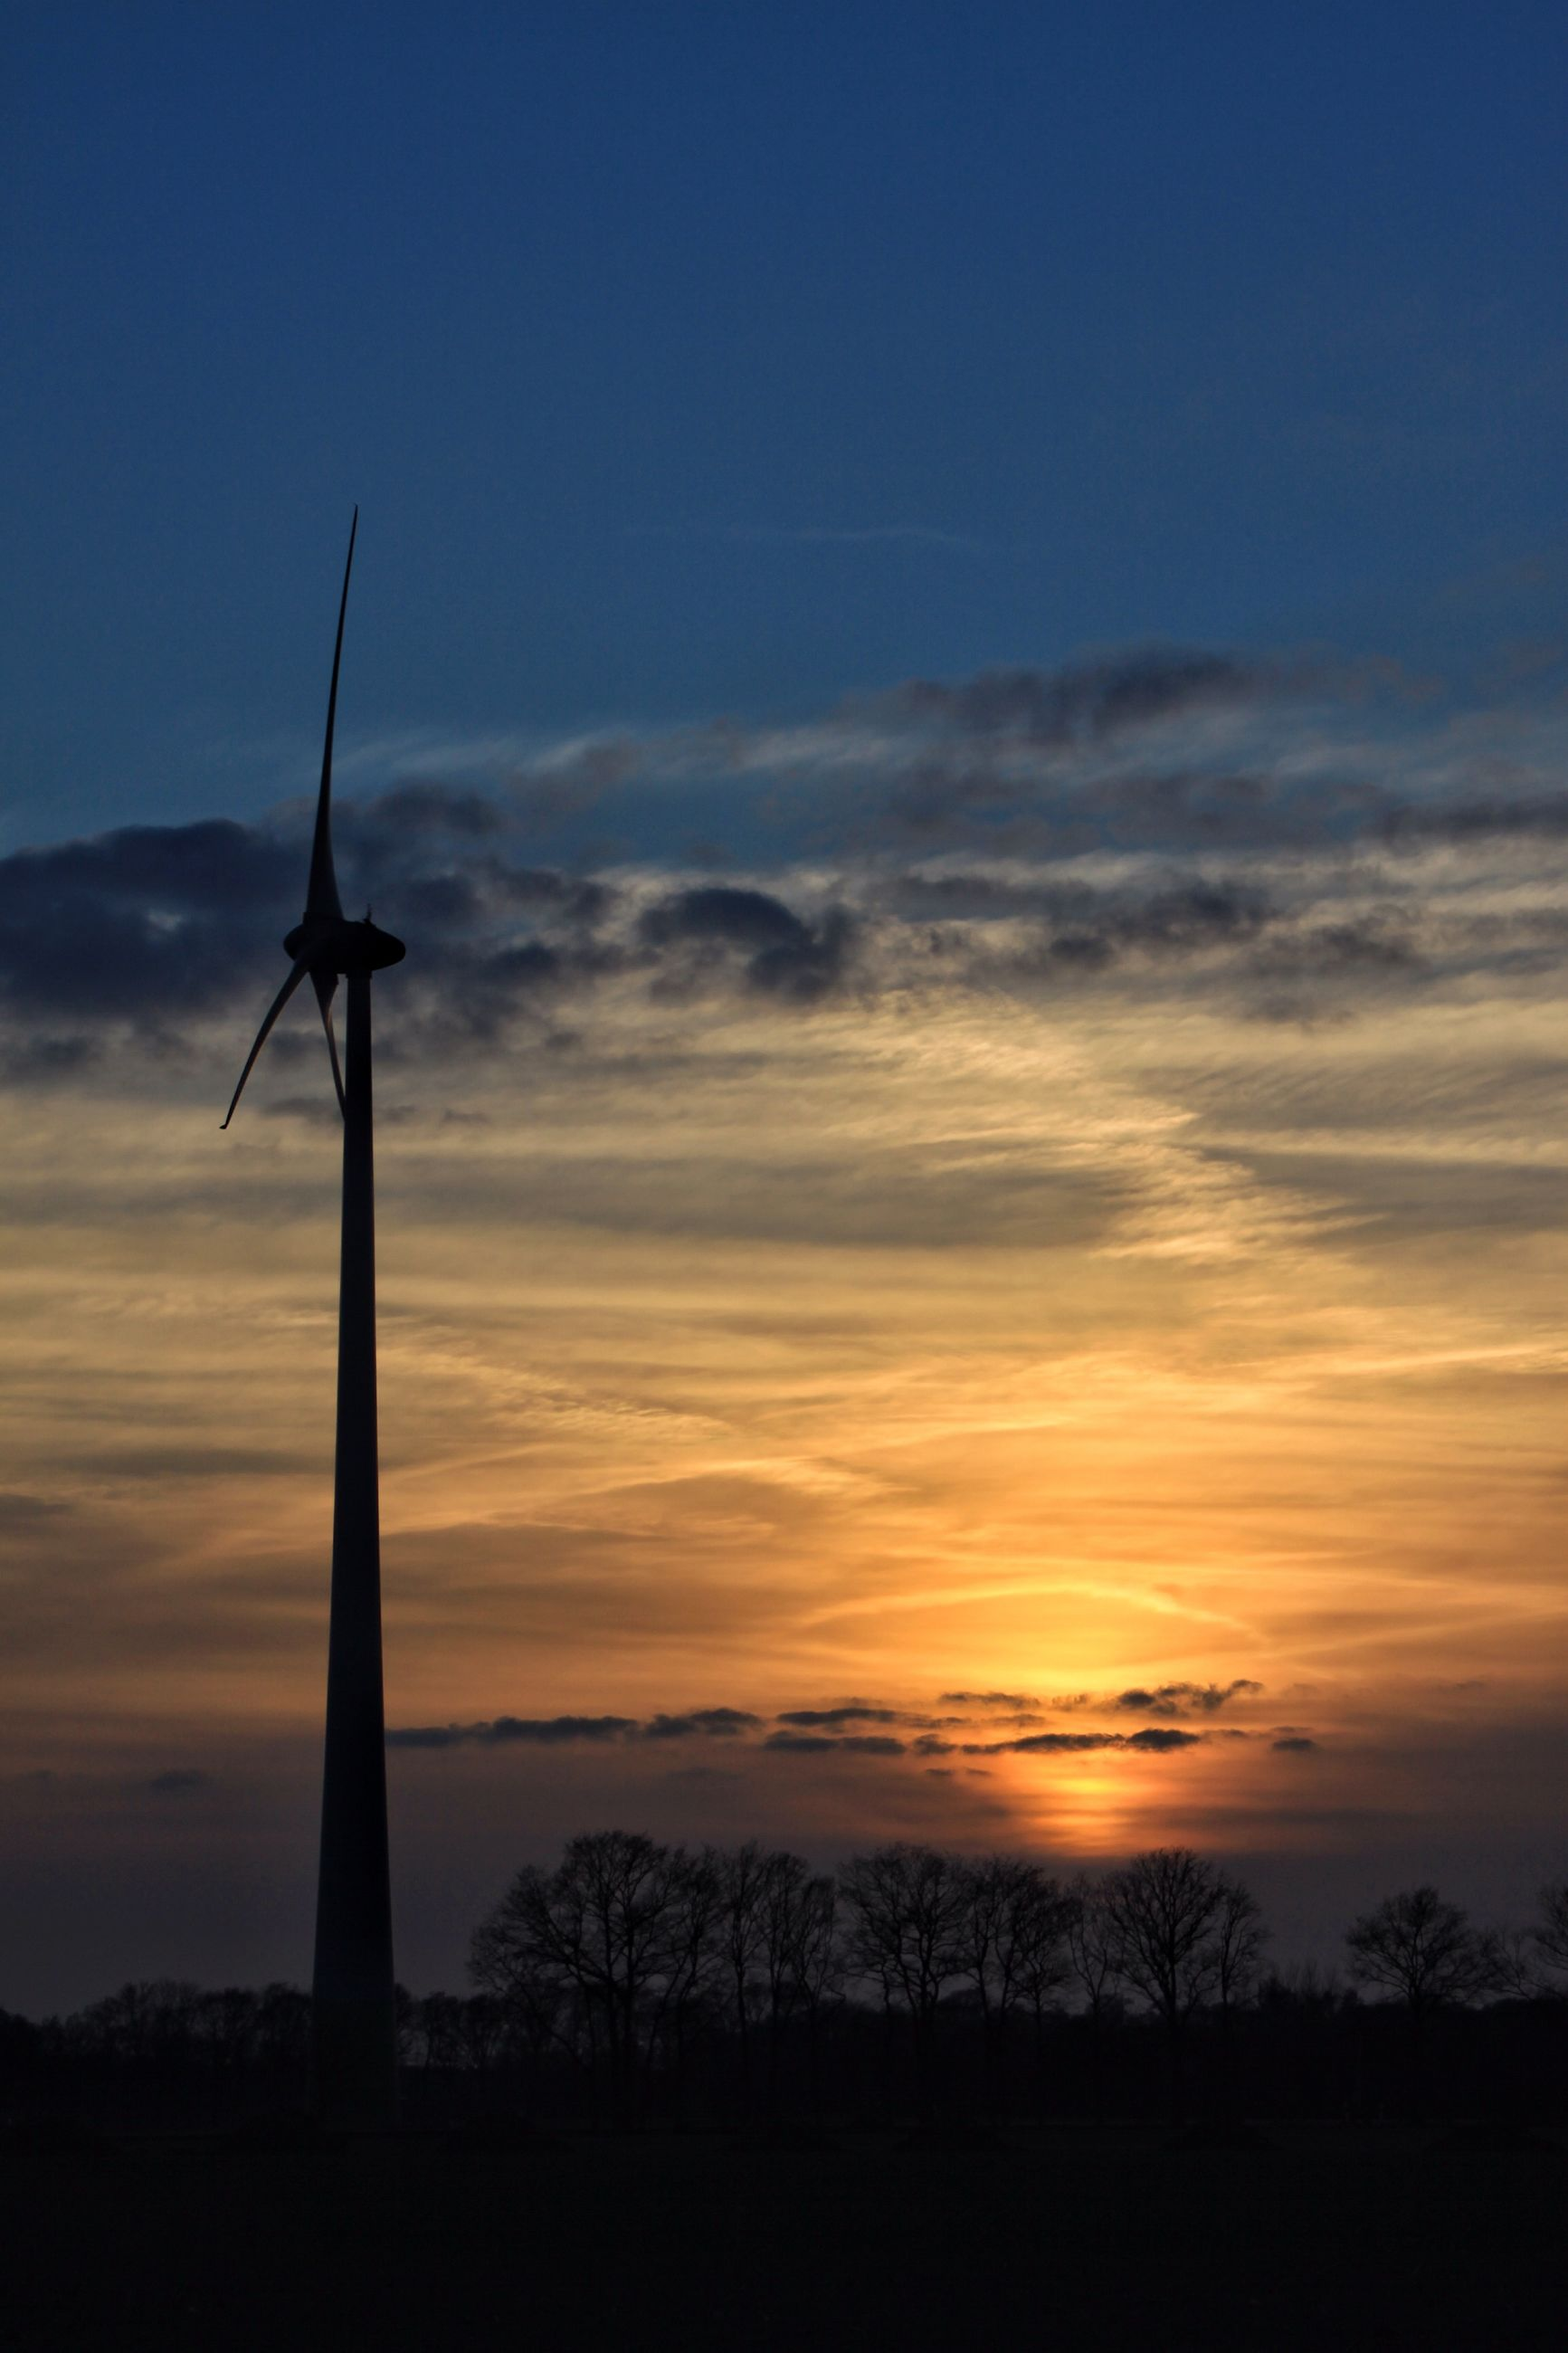 sunset, silhouette, sky, tranquility, scenics, beauty in nature, orange color, tranquil scene, cloud - sky, low angle view, nature, fuel and power generation, landscape, wind turbine, idyllic, field, alternative energy, wind power, cloud, windmill